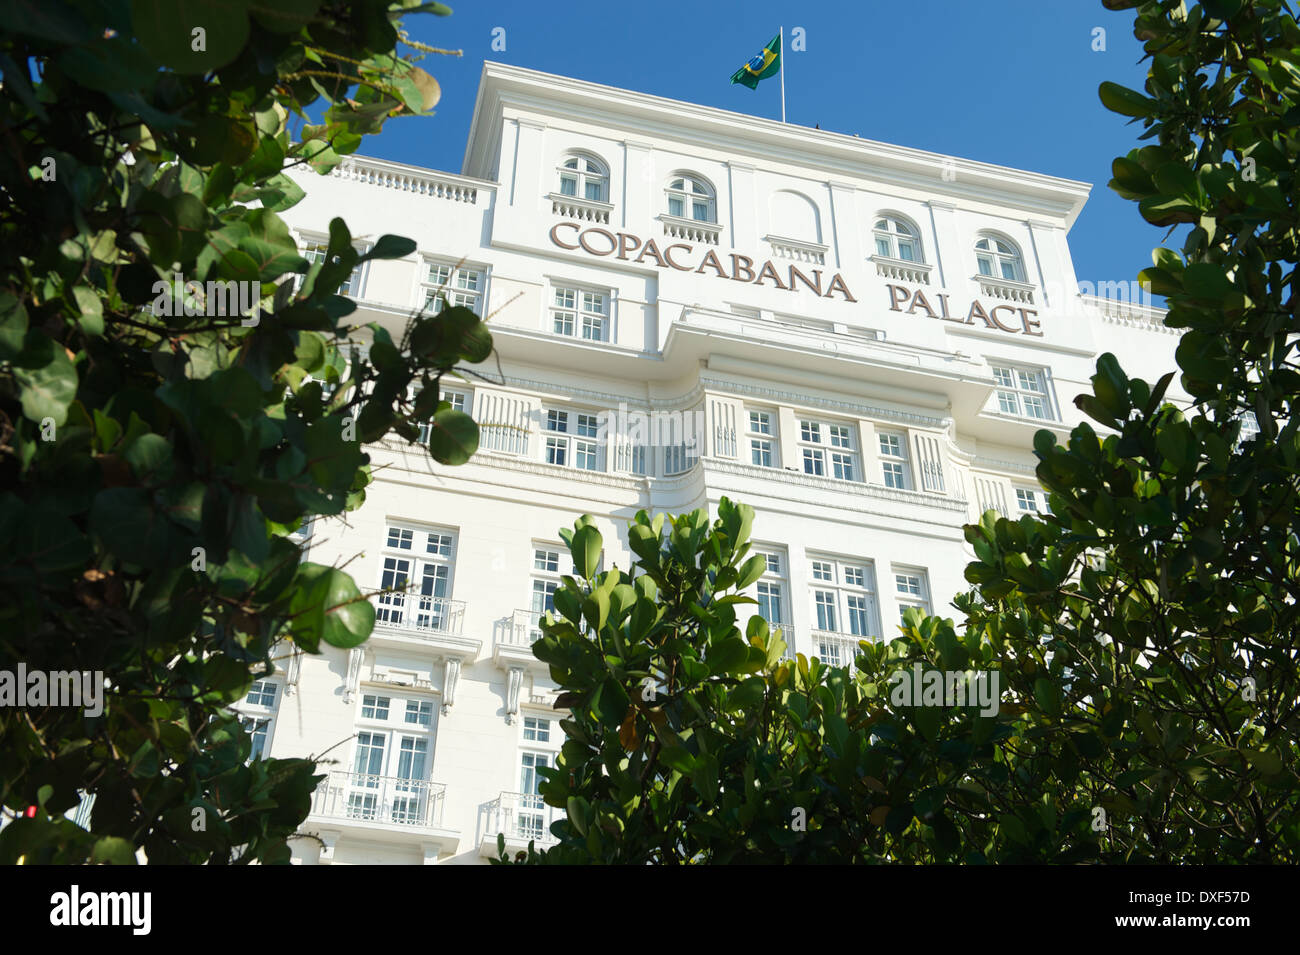 RIO DE JANEIRO, BRAZIL - FEBRUARY 11, 2014: Facade of the Copacabana Palace Hotel, whose design was based on the style of hotels - Stock Image